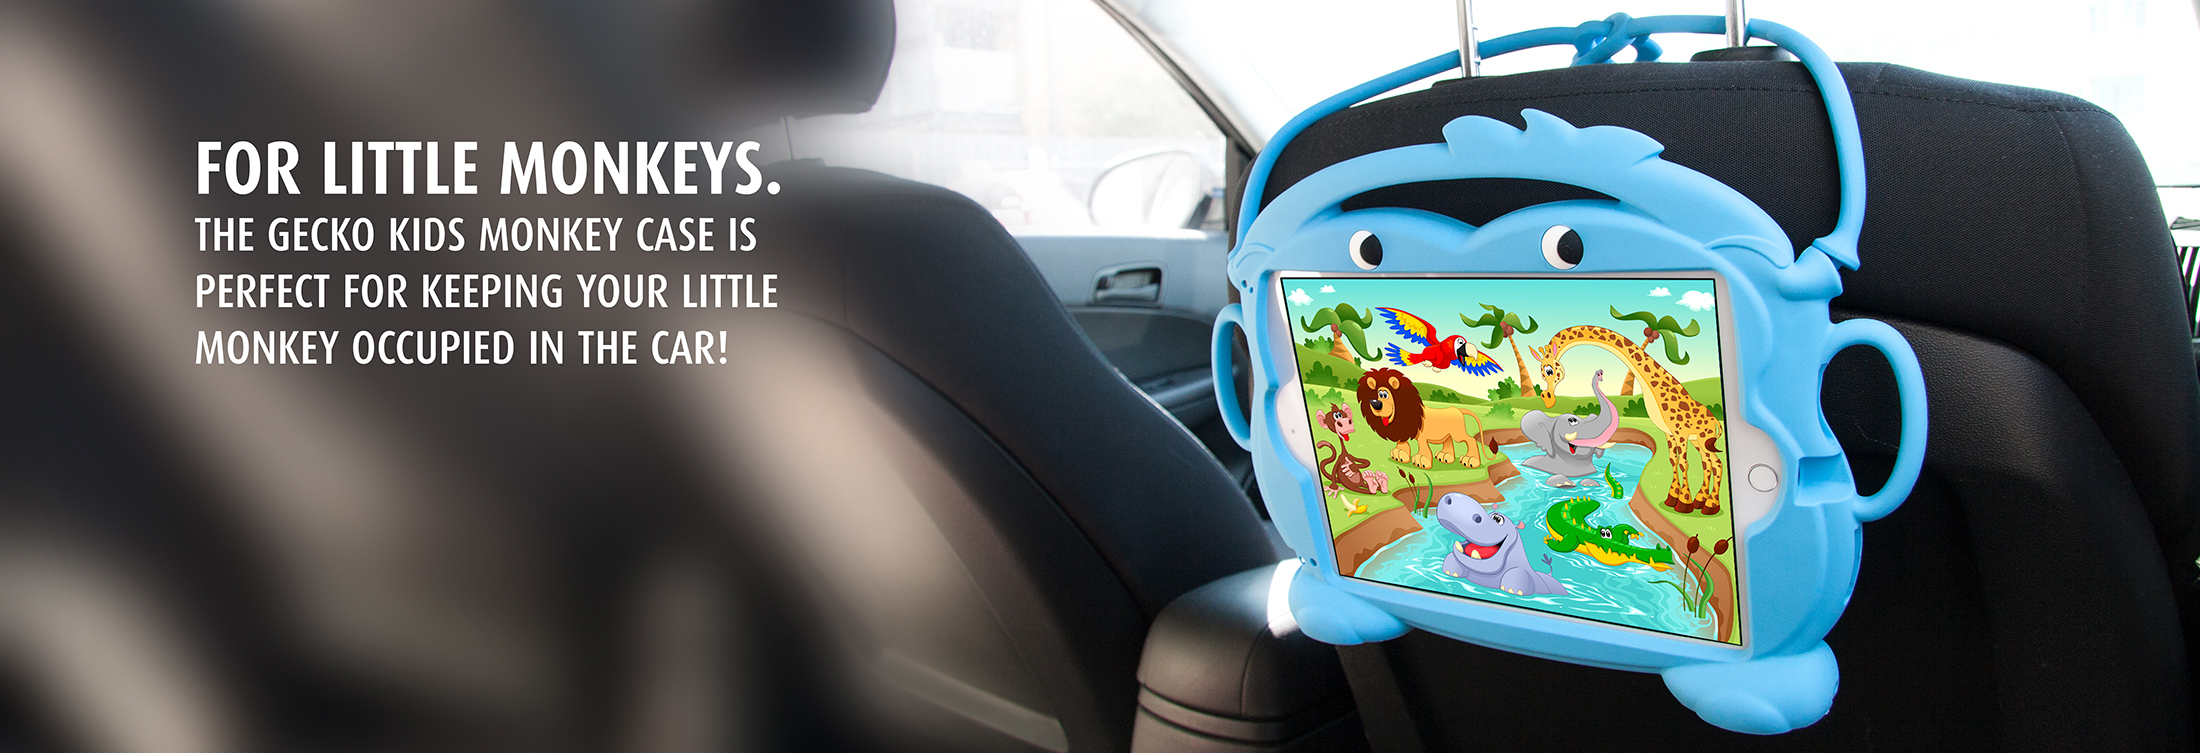 For little monkeys. The Gecko Kids Monkey Case is perfect for keeping your little monkey occupied in the car!